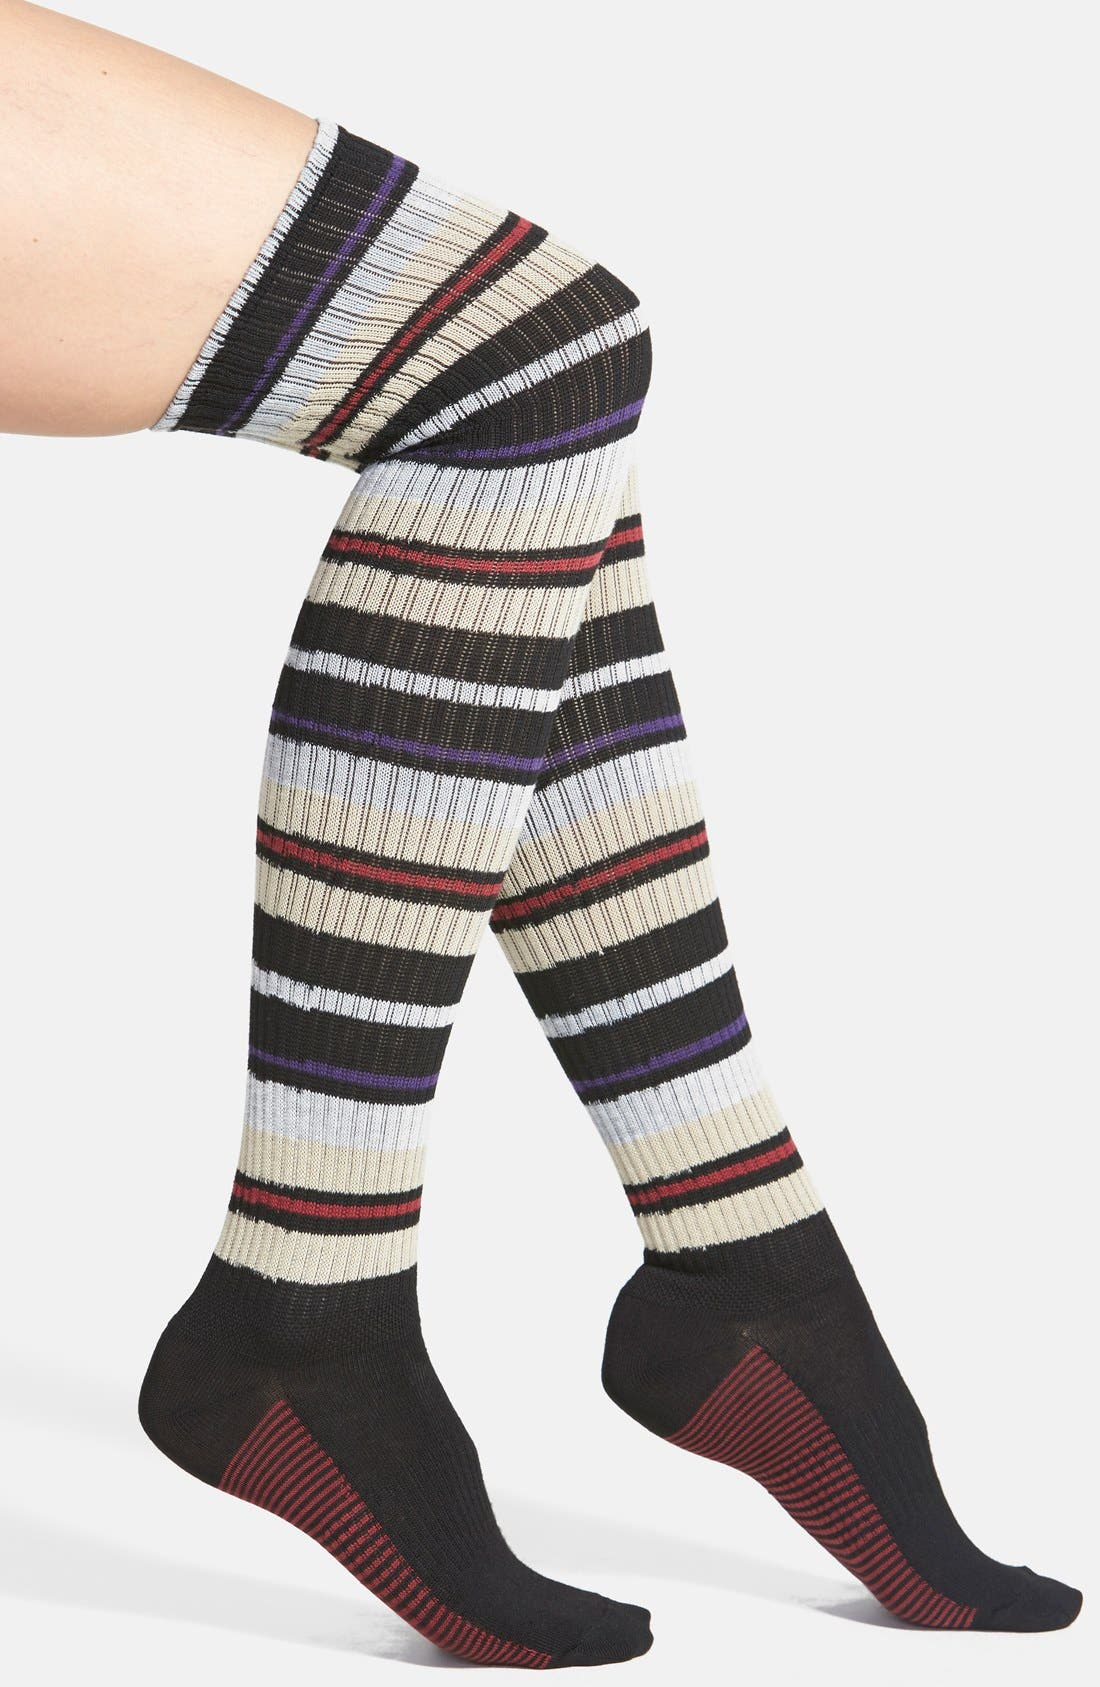 'High Road' Over the Knee Socks,                             Main thumbnail 1, color,                             001